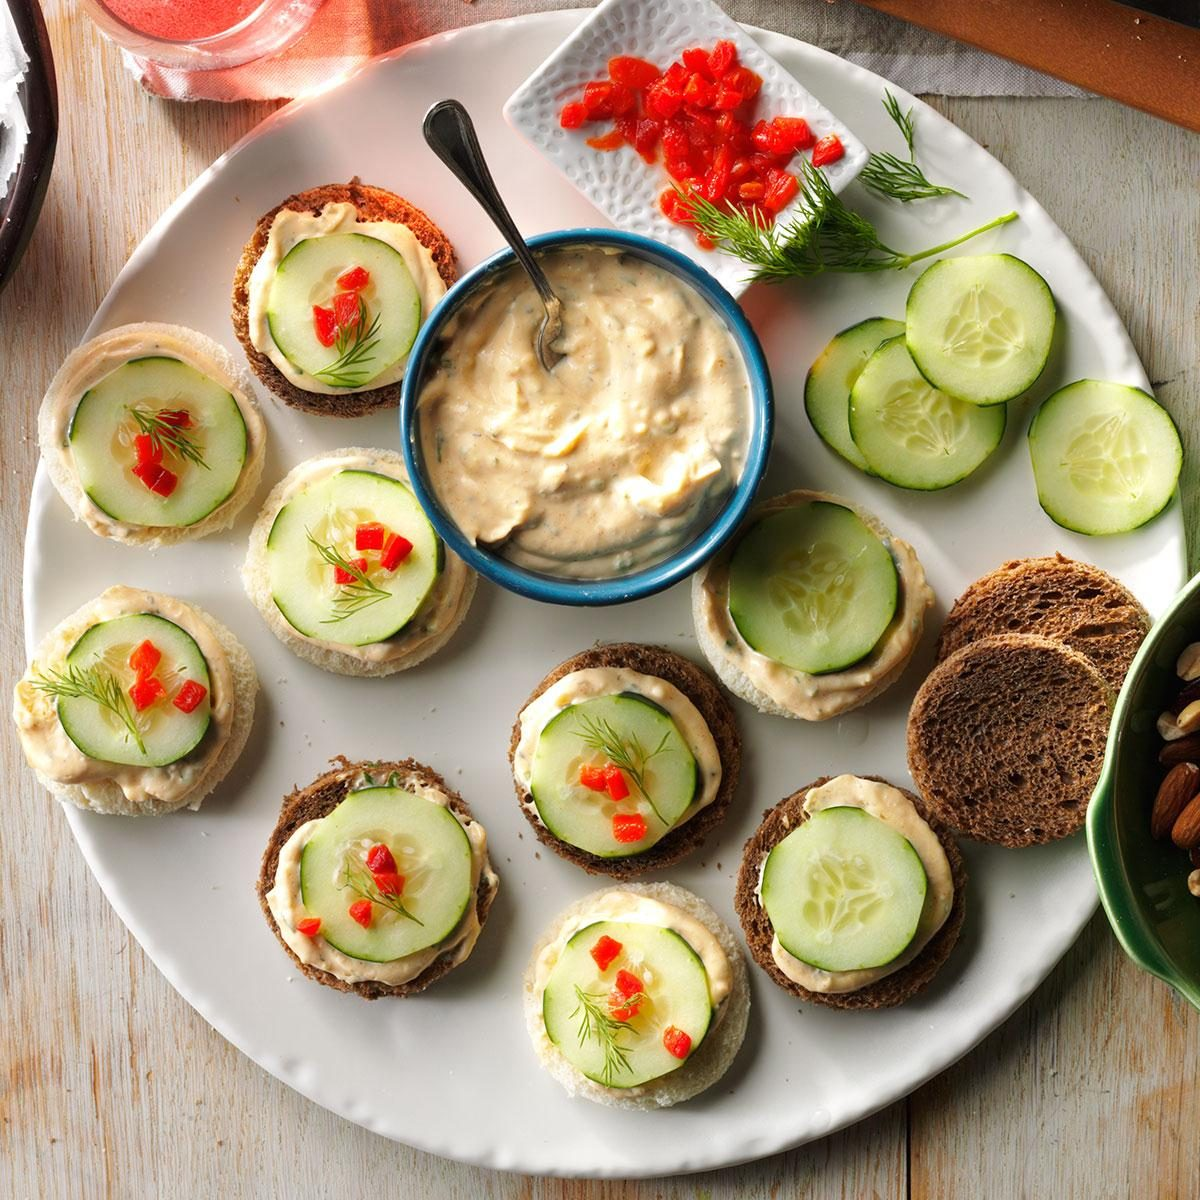 Cucumber canapes recipe taste of home for What is a canape appetizer